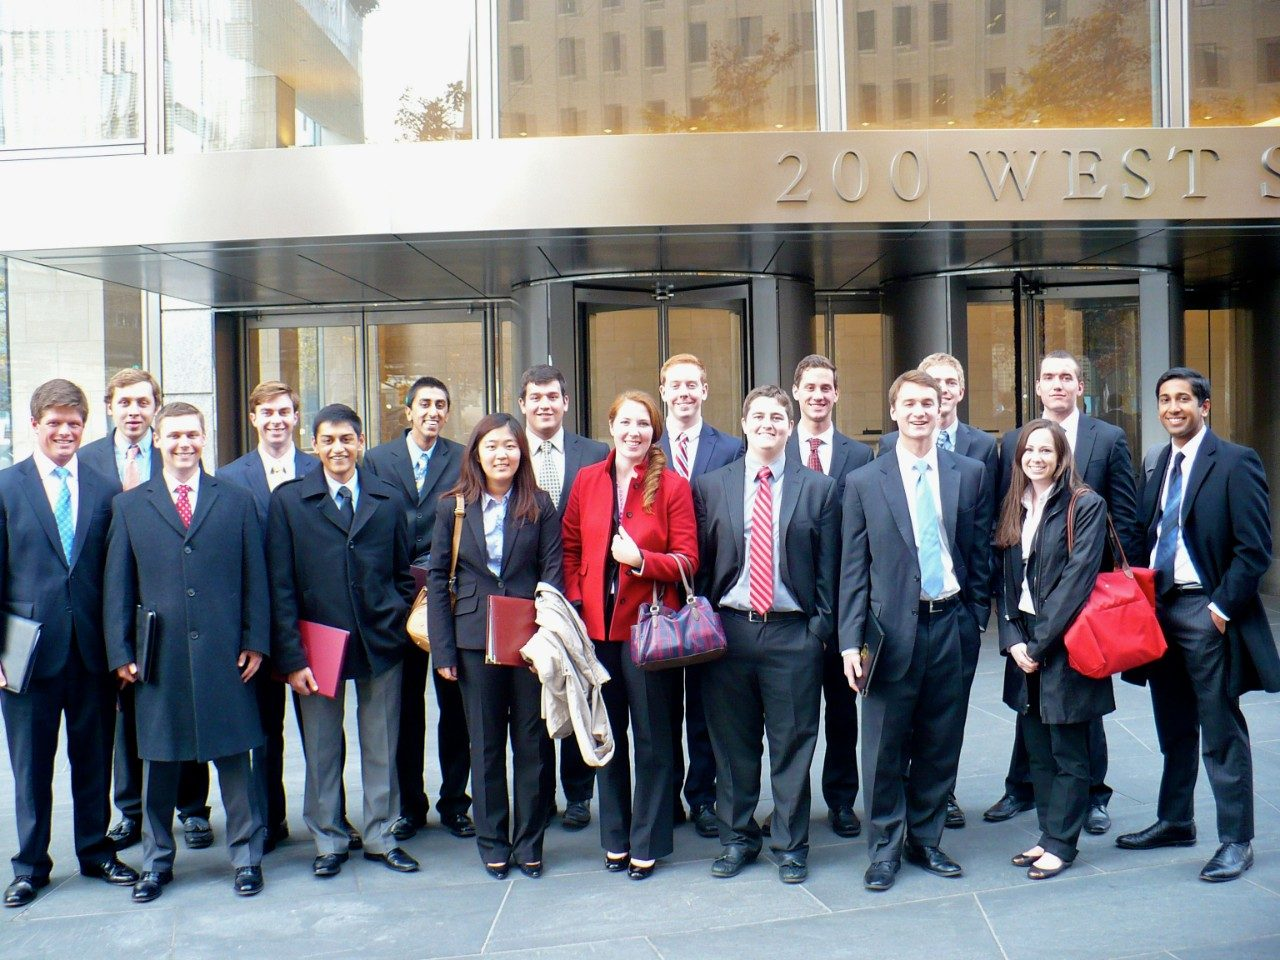 BASIS and SEED students visit the global headquarters of Goldman Sachs at 200 West Street during a recent visit to New York.